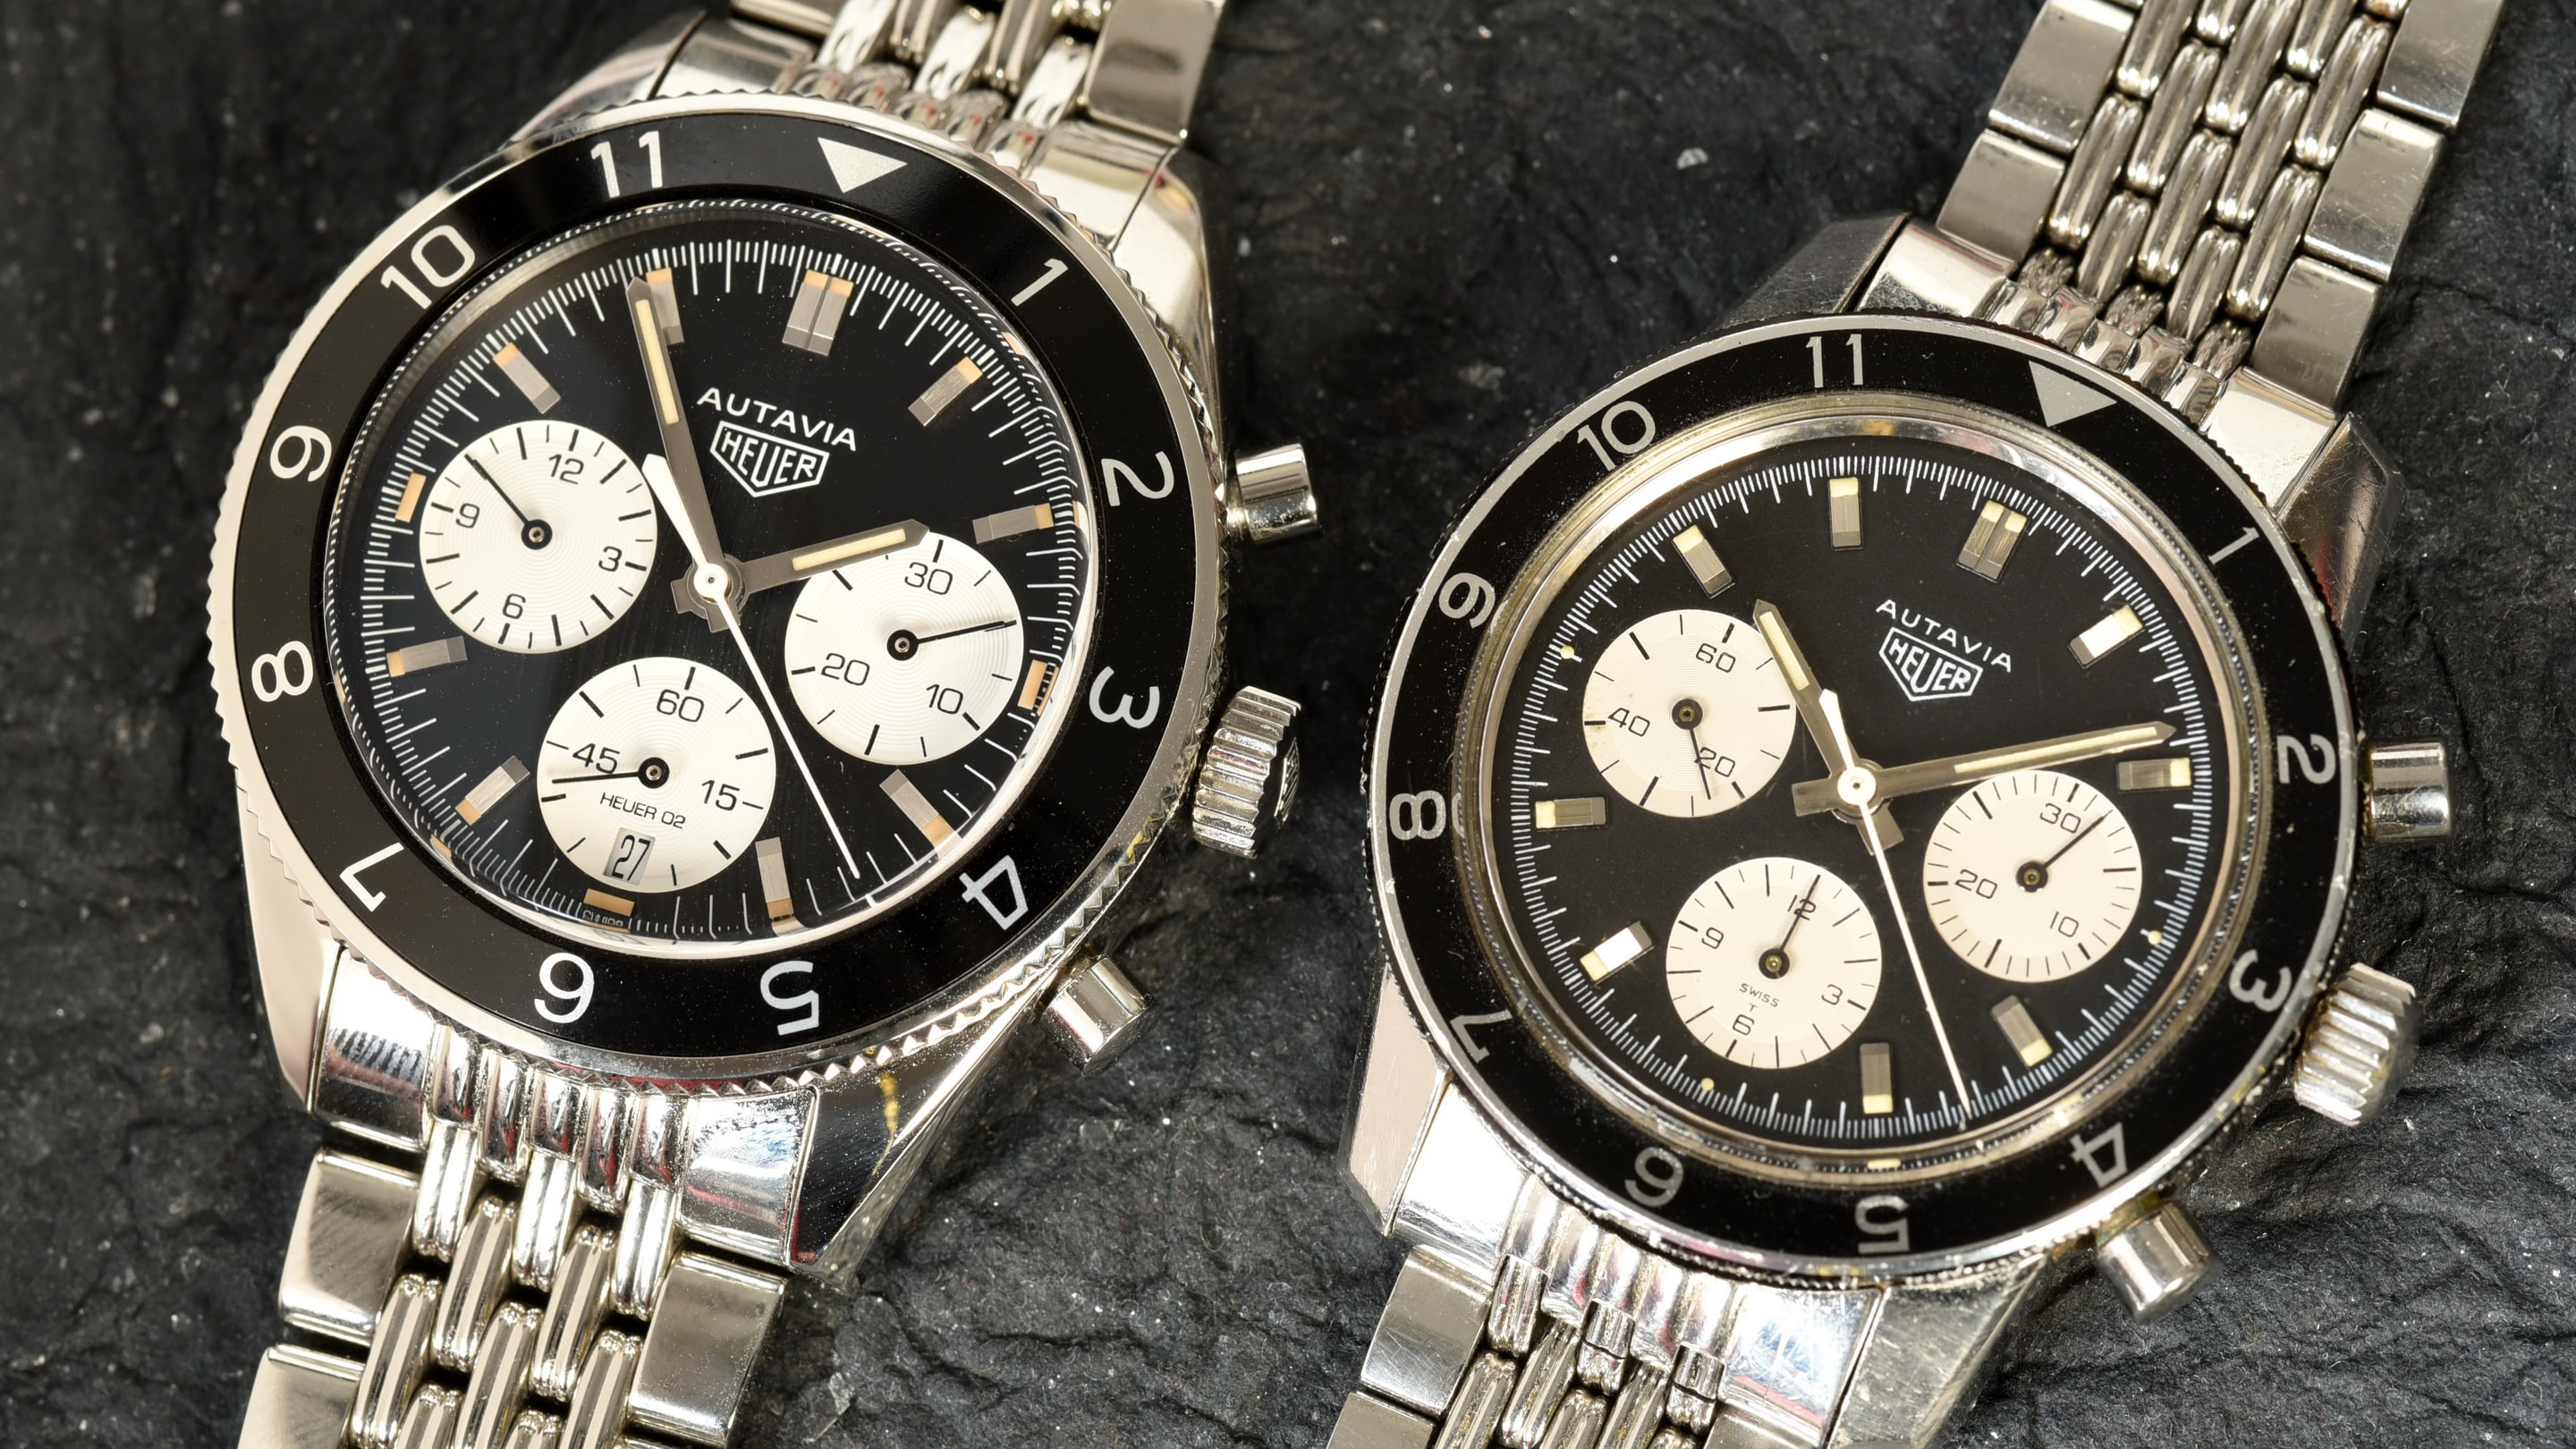 tag heuer autavia 2017 comparison vintage Interview: Heuer Expert Jeff Stein's Take On The 2017 TAG Heuer Autavia Interview: Heuer Expert Jeff Stein's Take On The 2017 TAG Heuer Autavia 02Aut2017and2446C2880